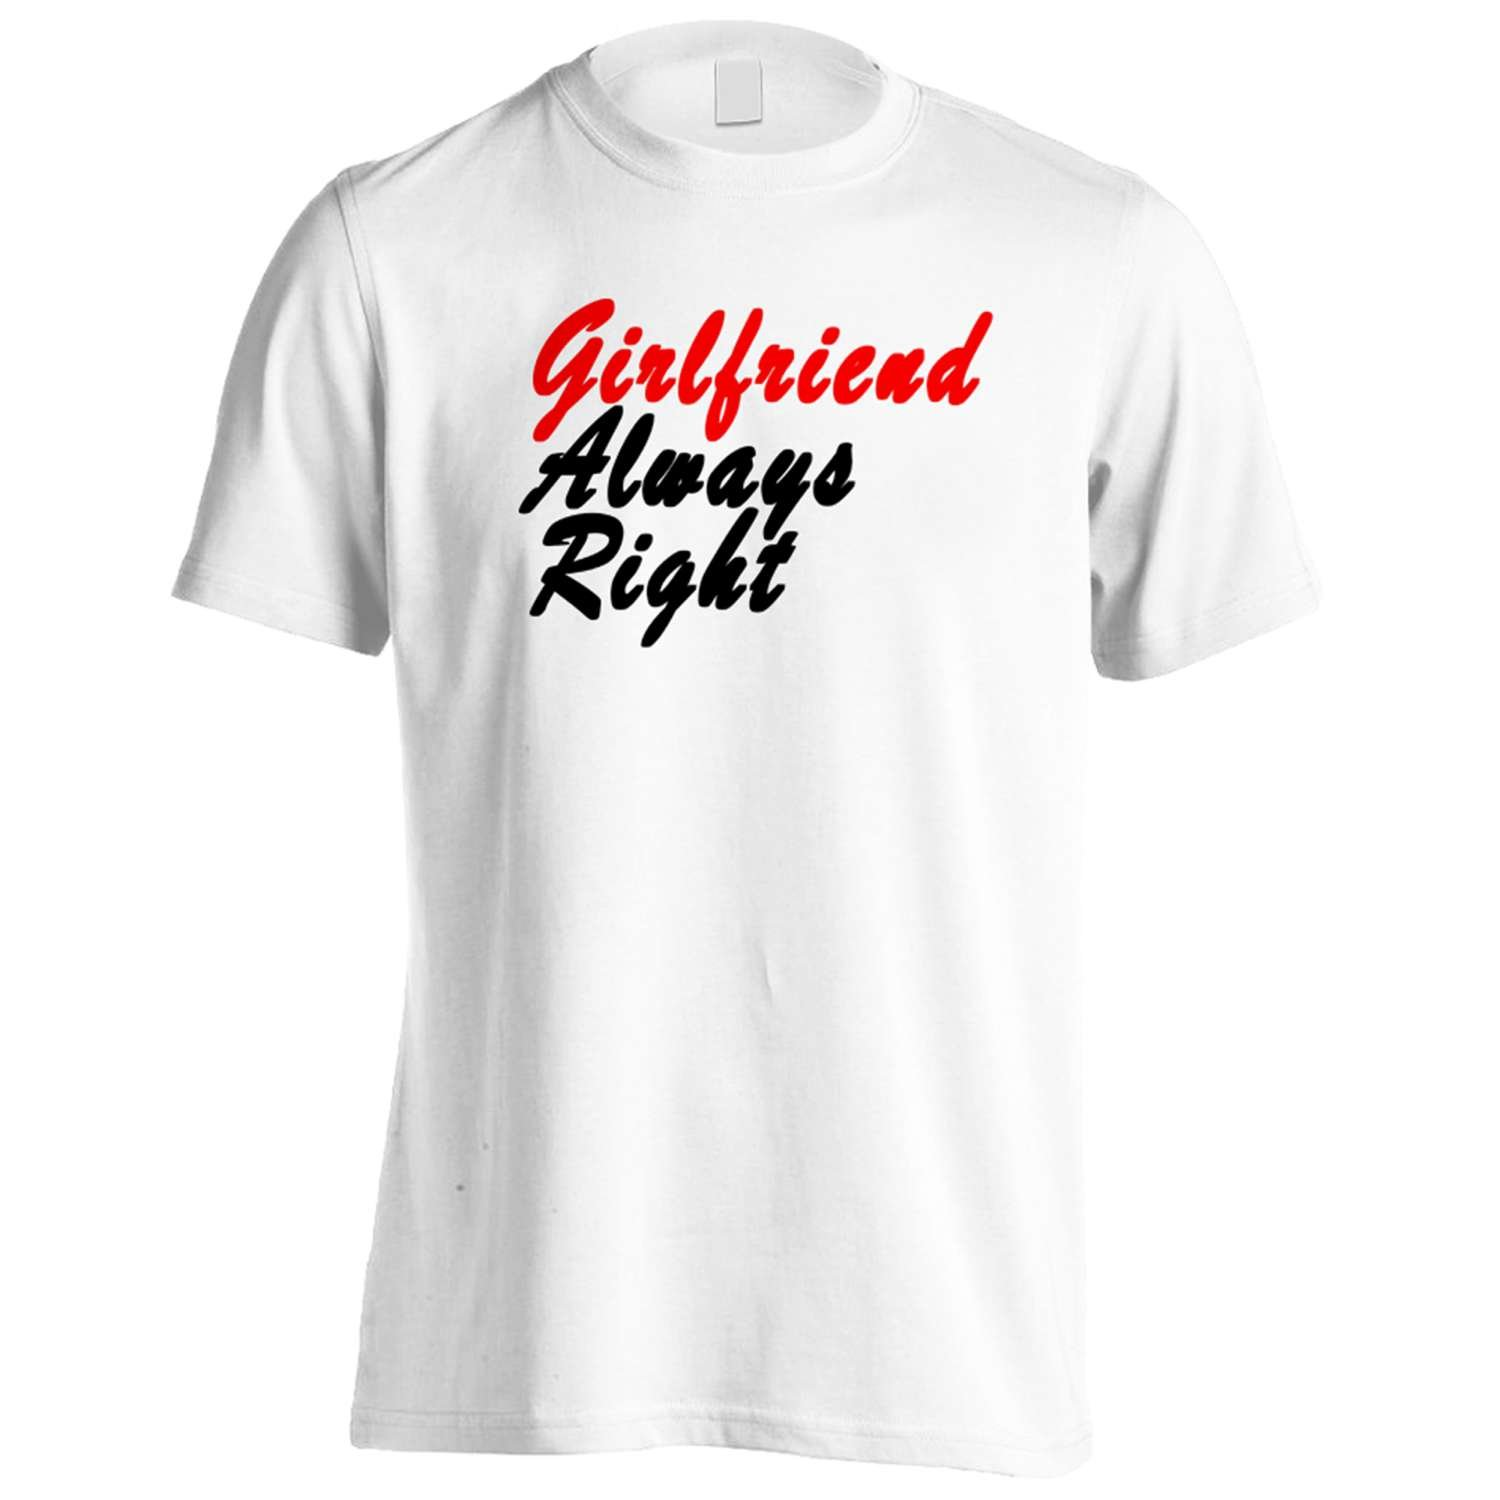 Girlfirend Always Right Anymore Funny Novelty New Men's T-Shirt Tee f90m